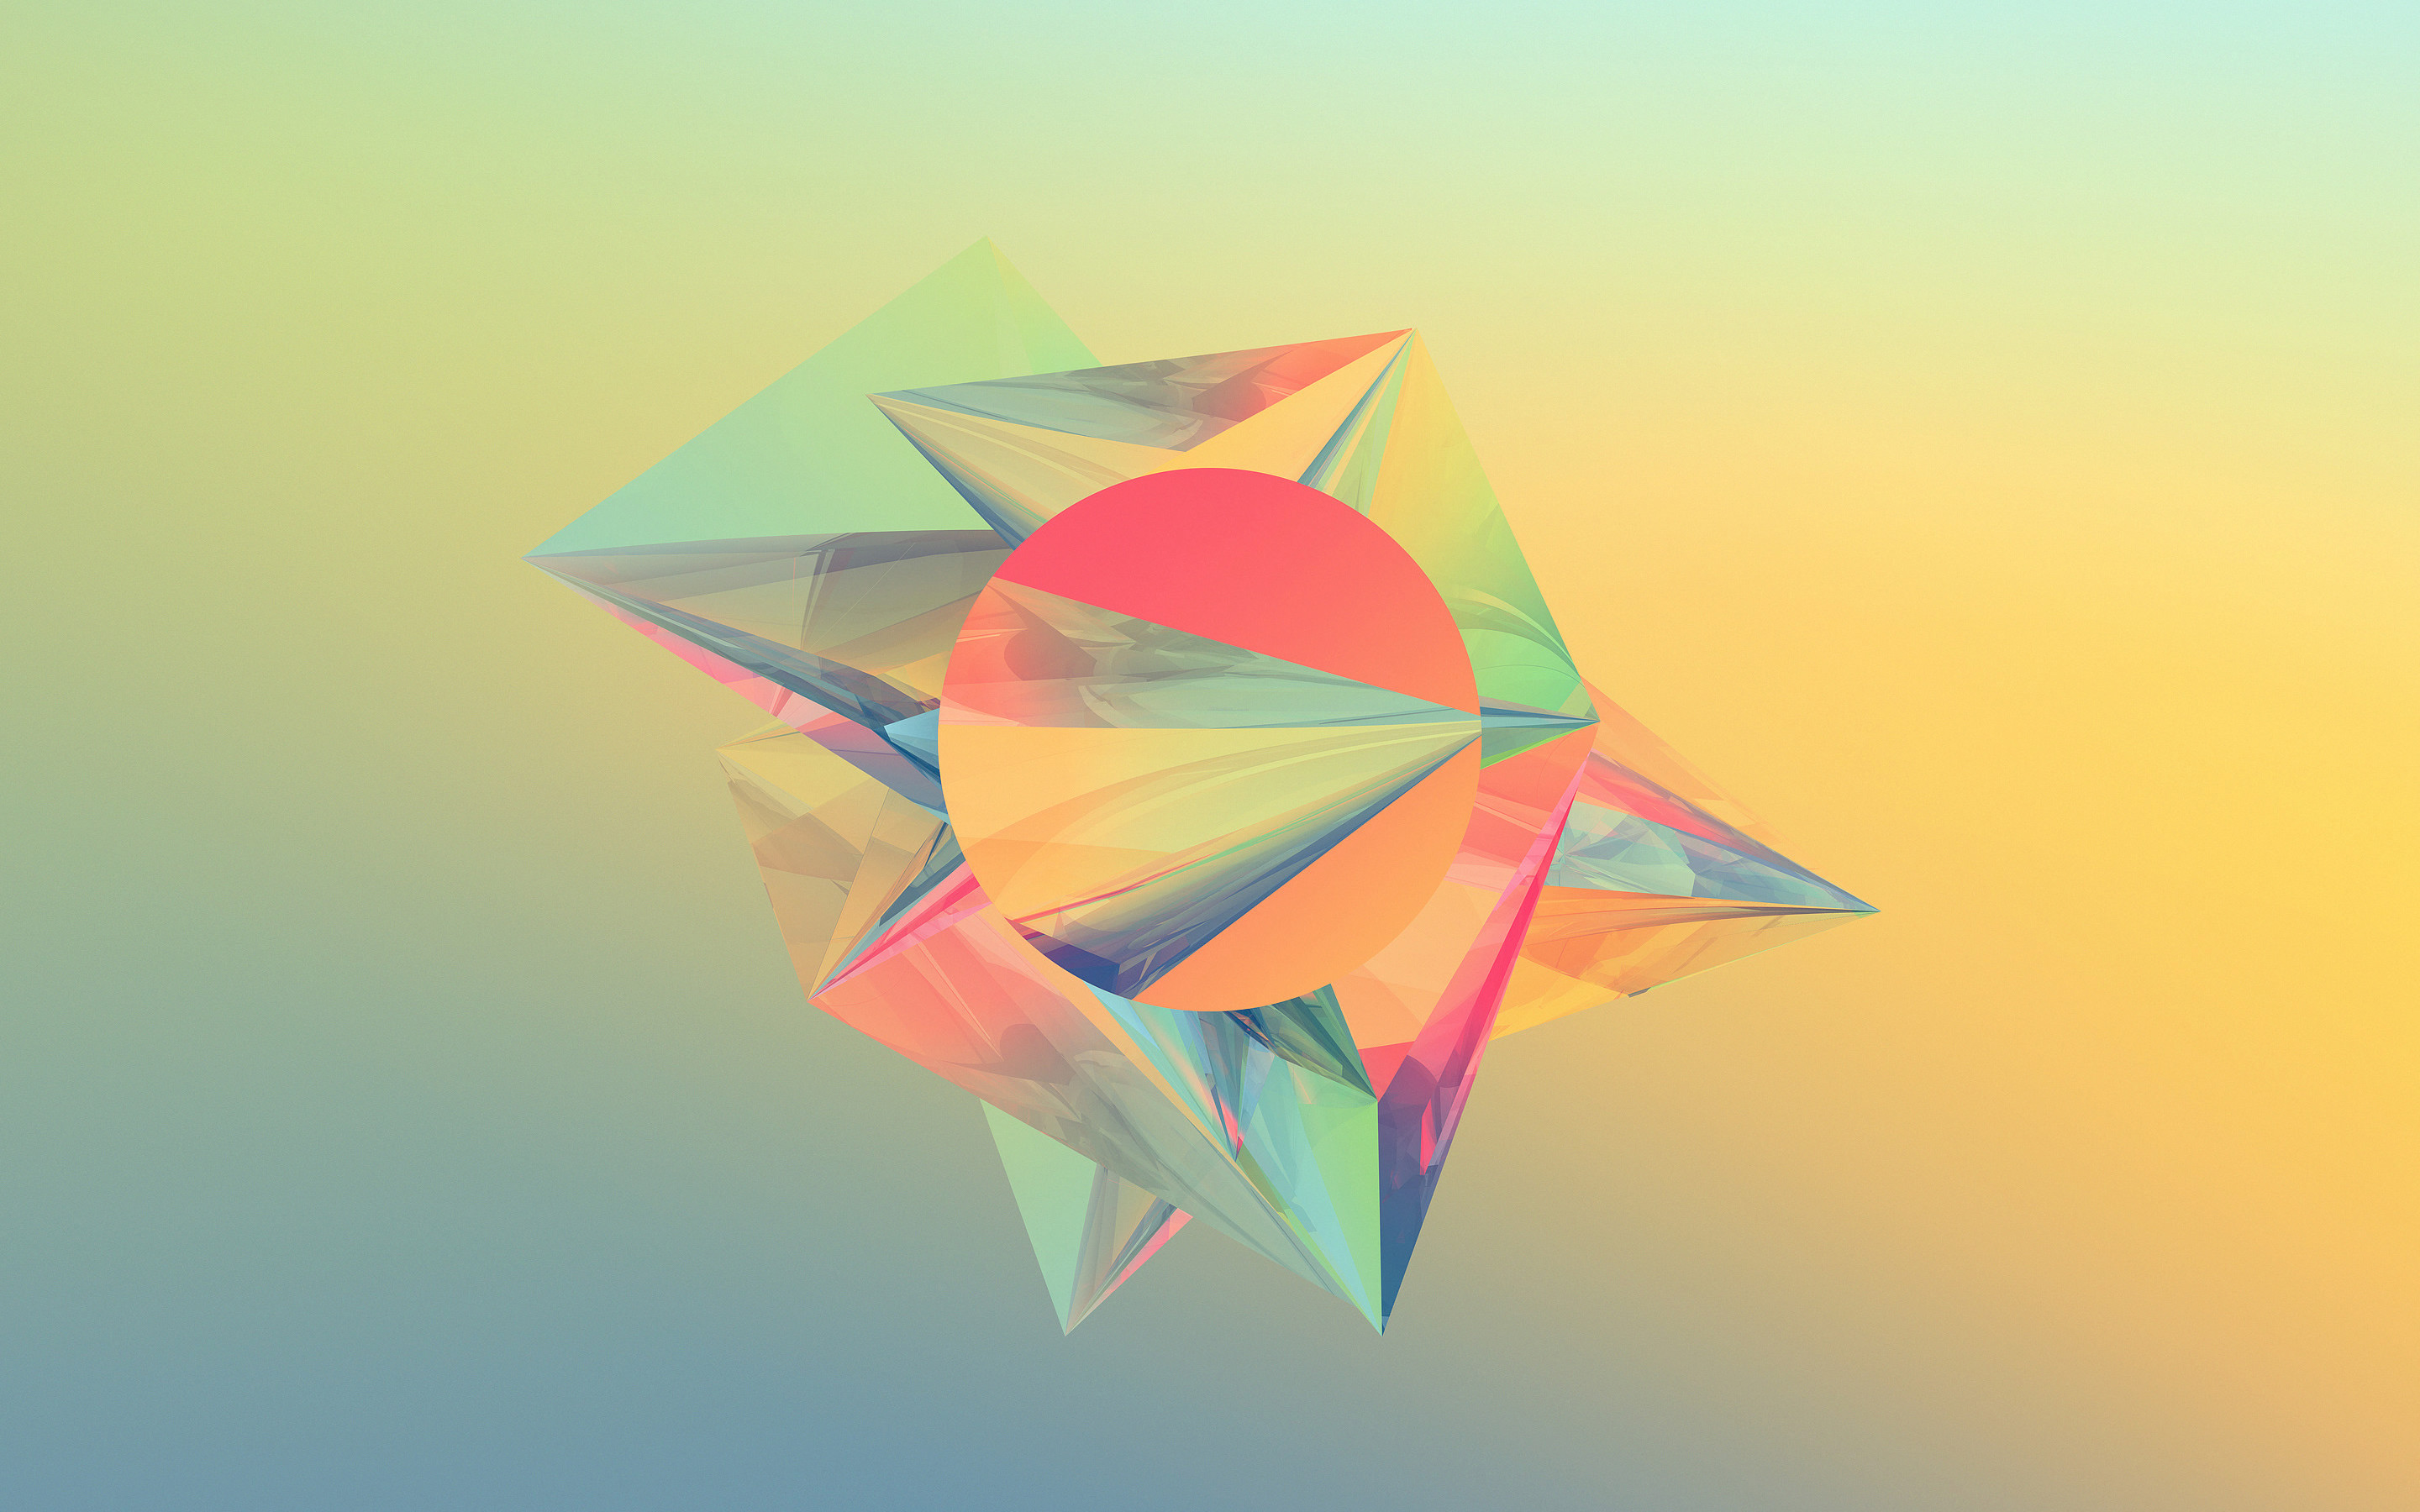 2880x1800 Abstract Crystals Shape Colorful Desktop Wallpaper Uploaded by 10Mantra